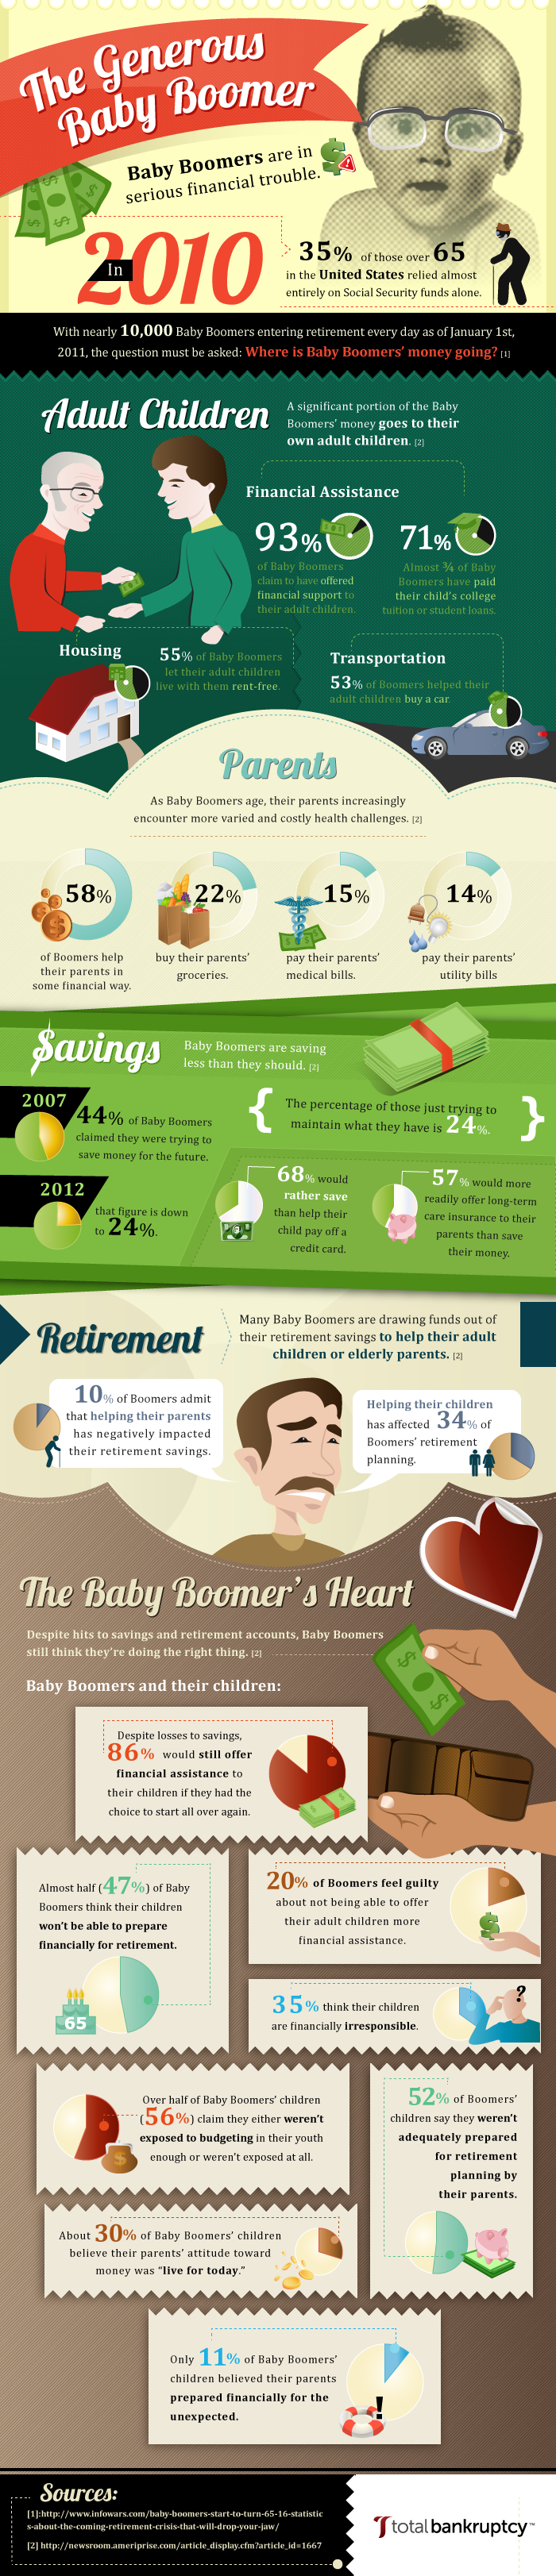 Baby Boomer Generation Facts